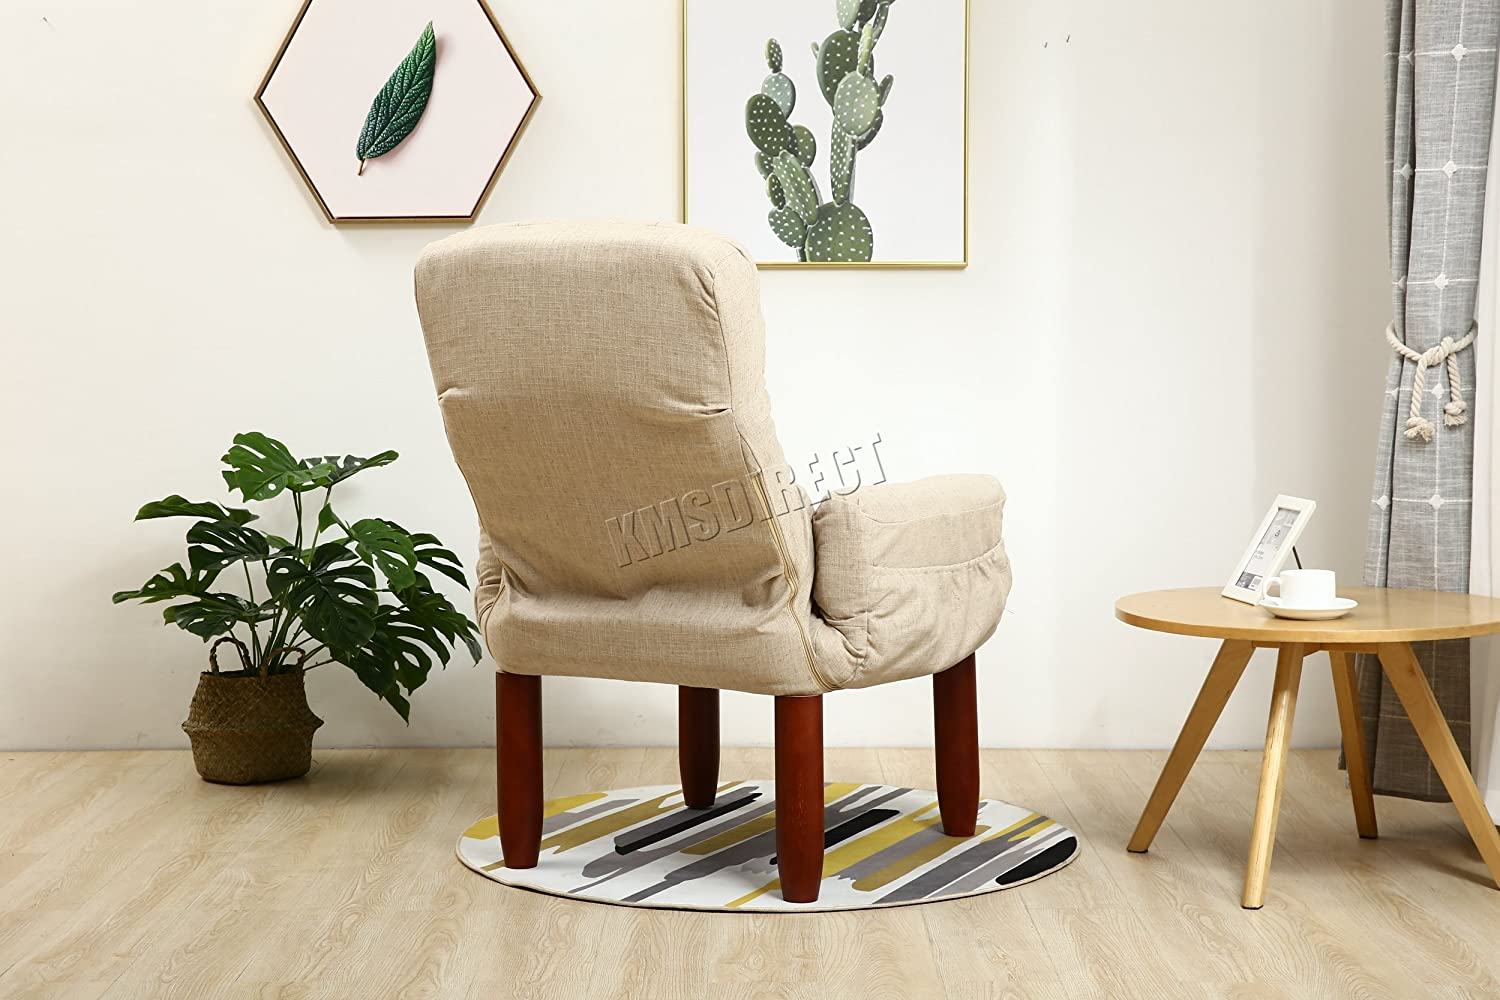 WestWood Modern Single Fabric Armchair Seat Accent Chair Sofa ...